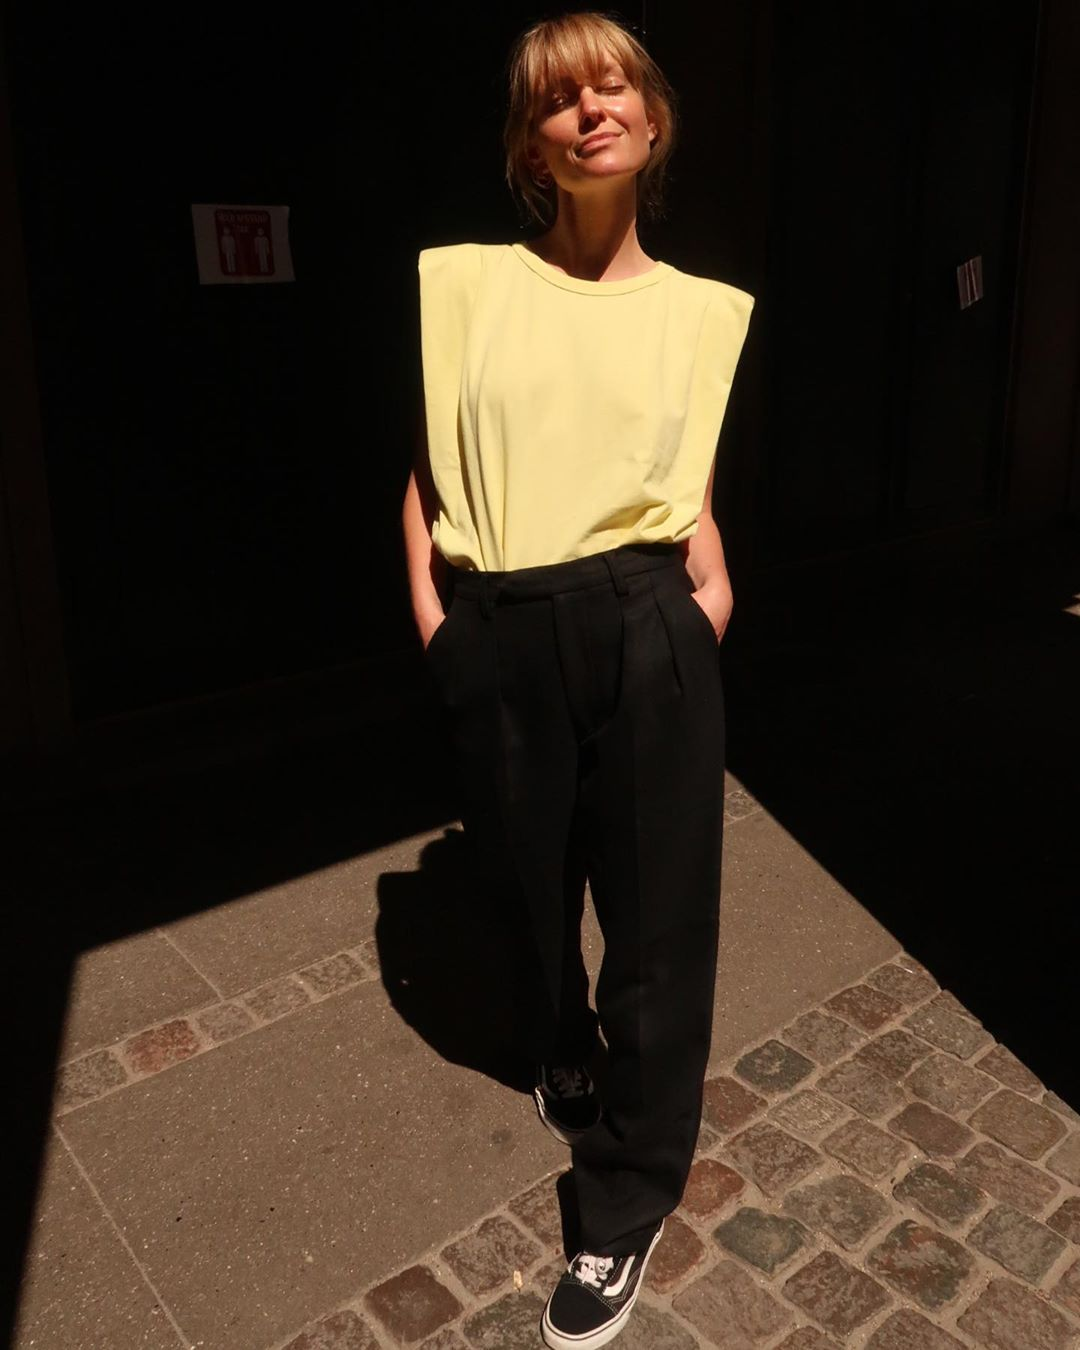 jeanette-madsen-frankie-shop-eva-padded-shoulder-mucle-tee-sunshine-yellow-camille-charriere